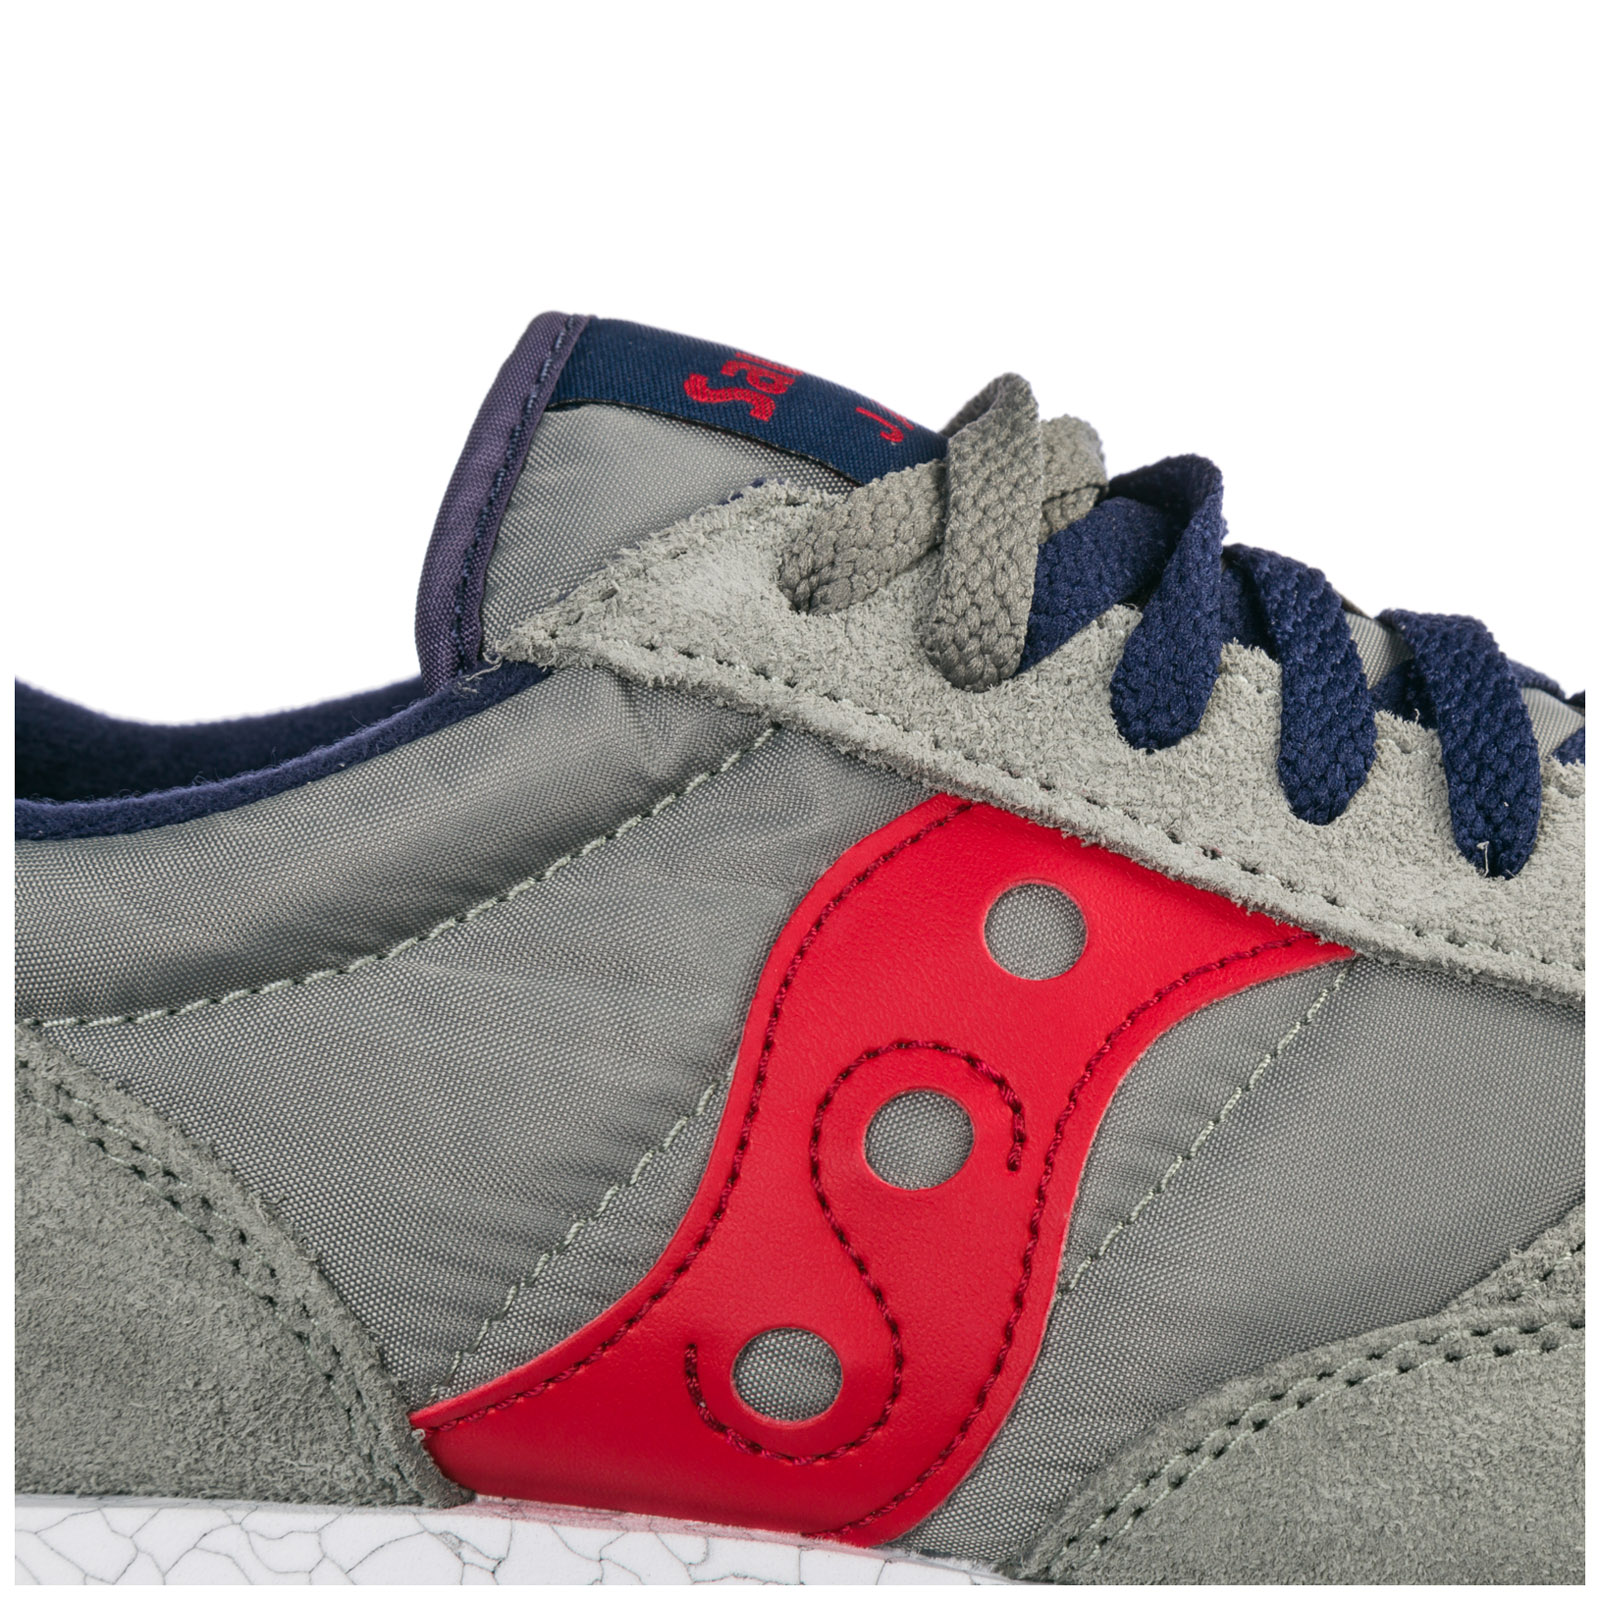 free shipping 6acb7 3c32e Men's shoes suede trainers sneakers jazz o